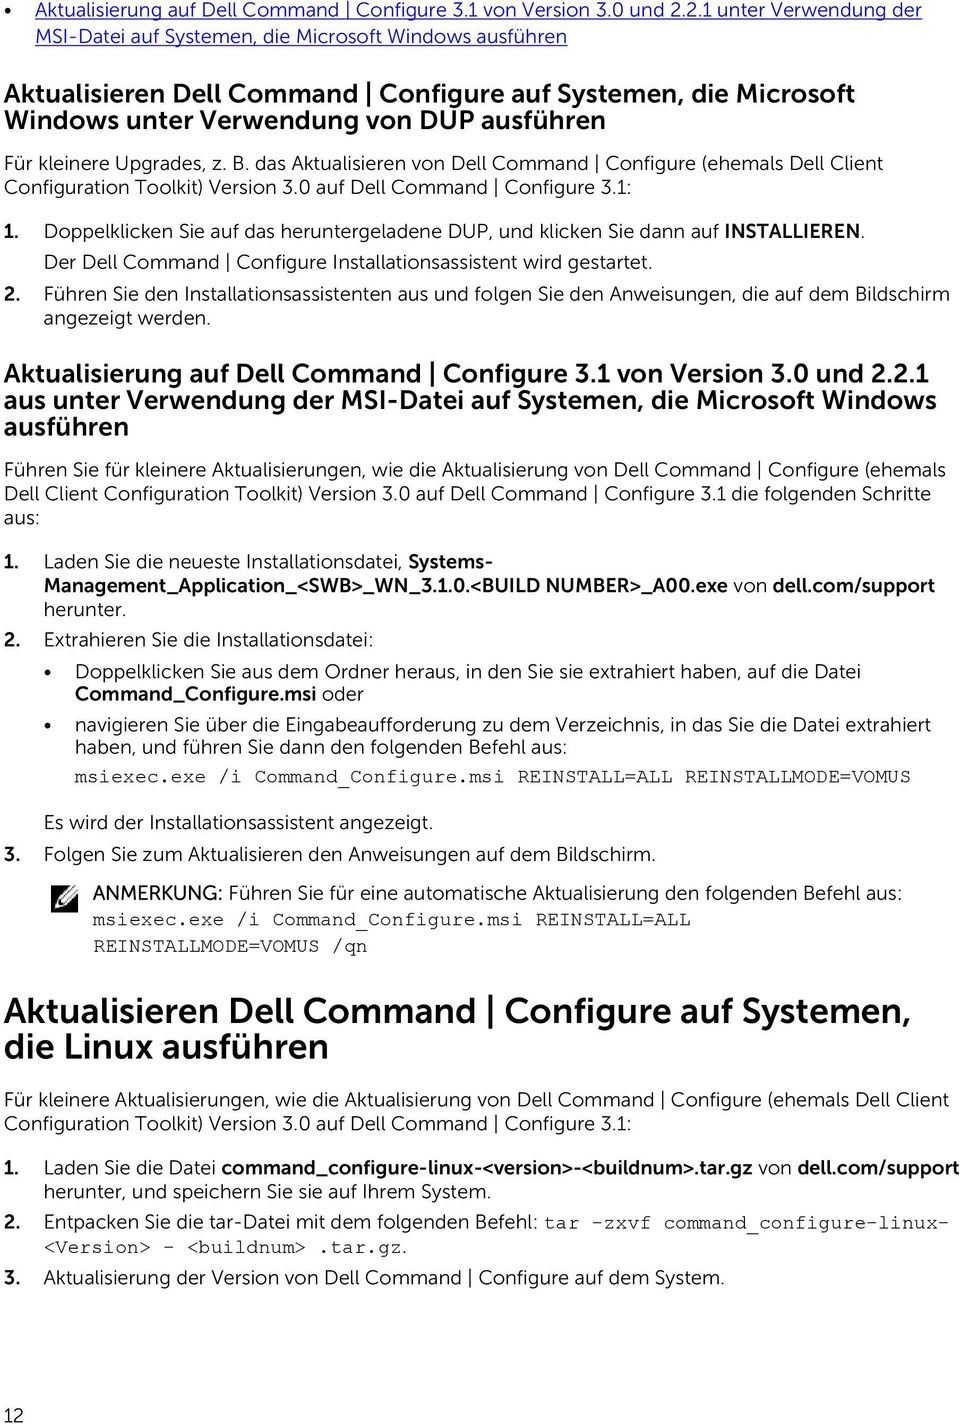 kleinere Upgrades, z. B. das Aktualisieren von Dell Command Configure (ehemals Dell Client Configuration Toolkit) Version 3.0 auf Dell Command Configure 3.1: 1.